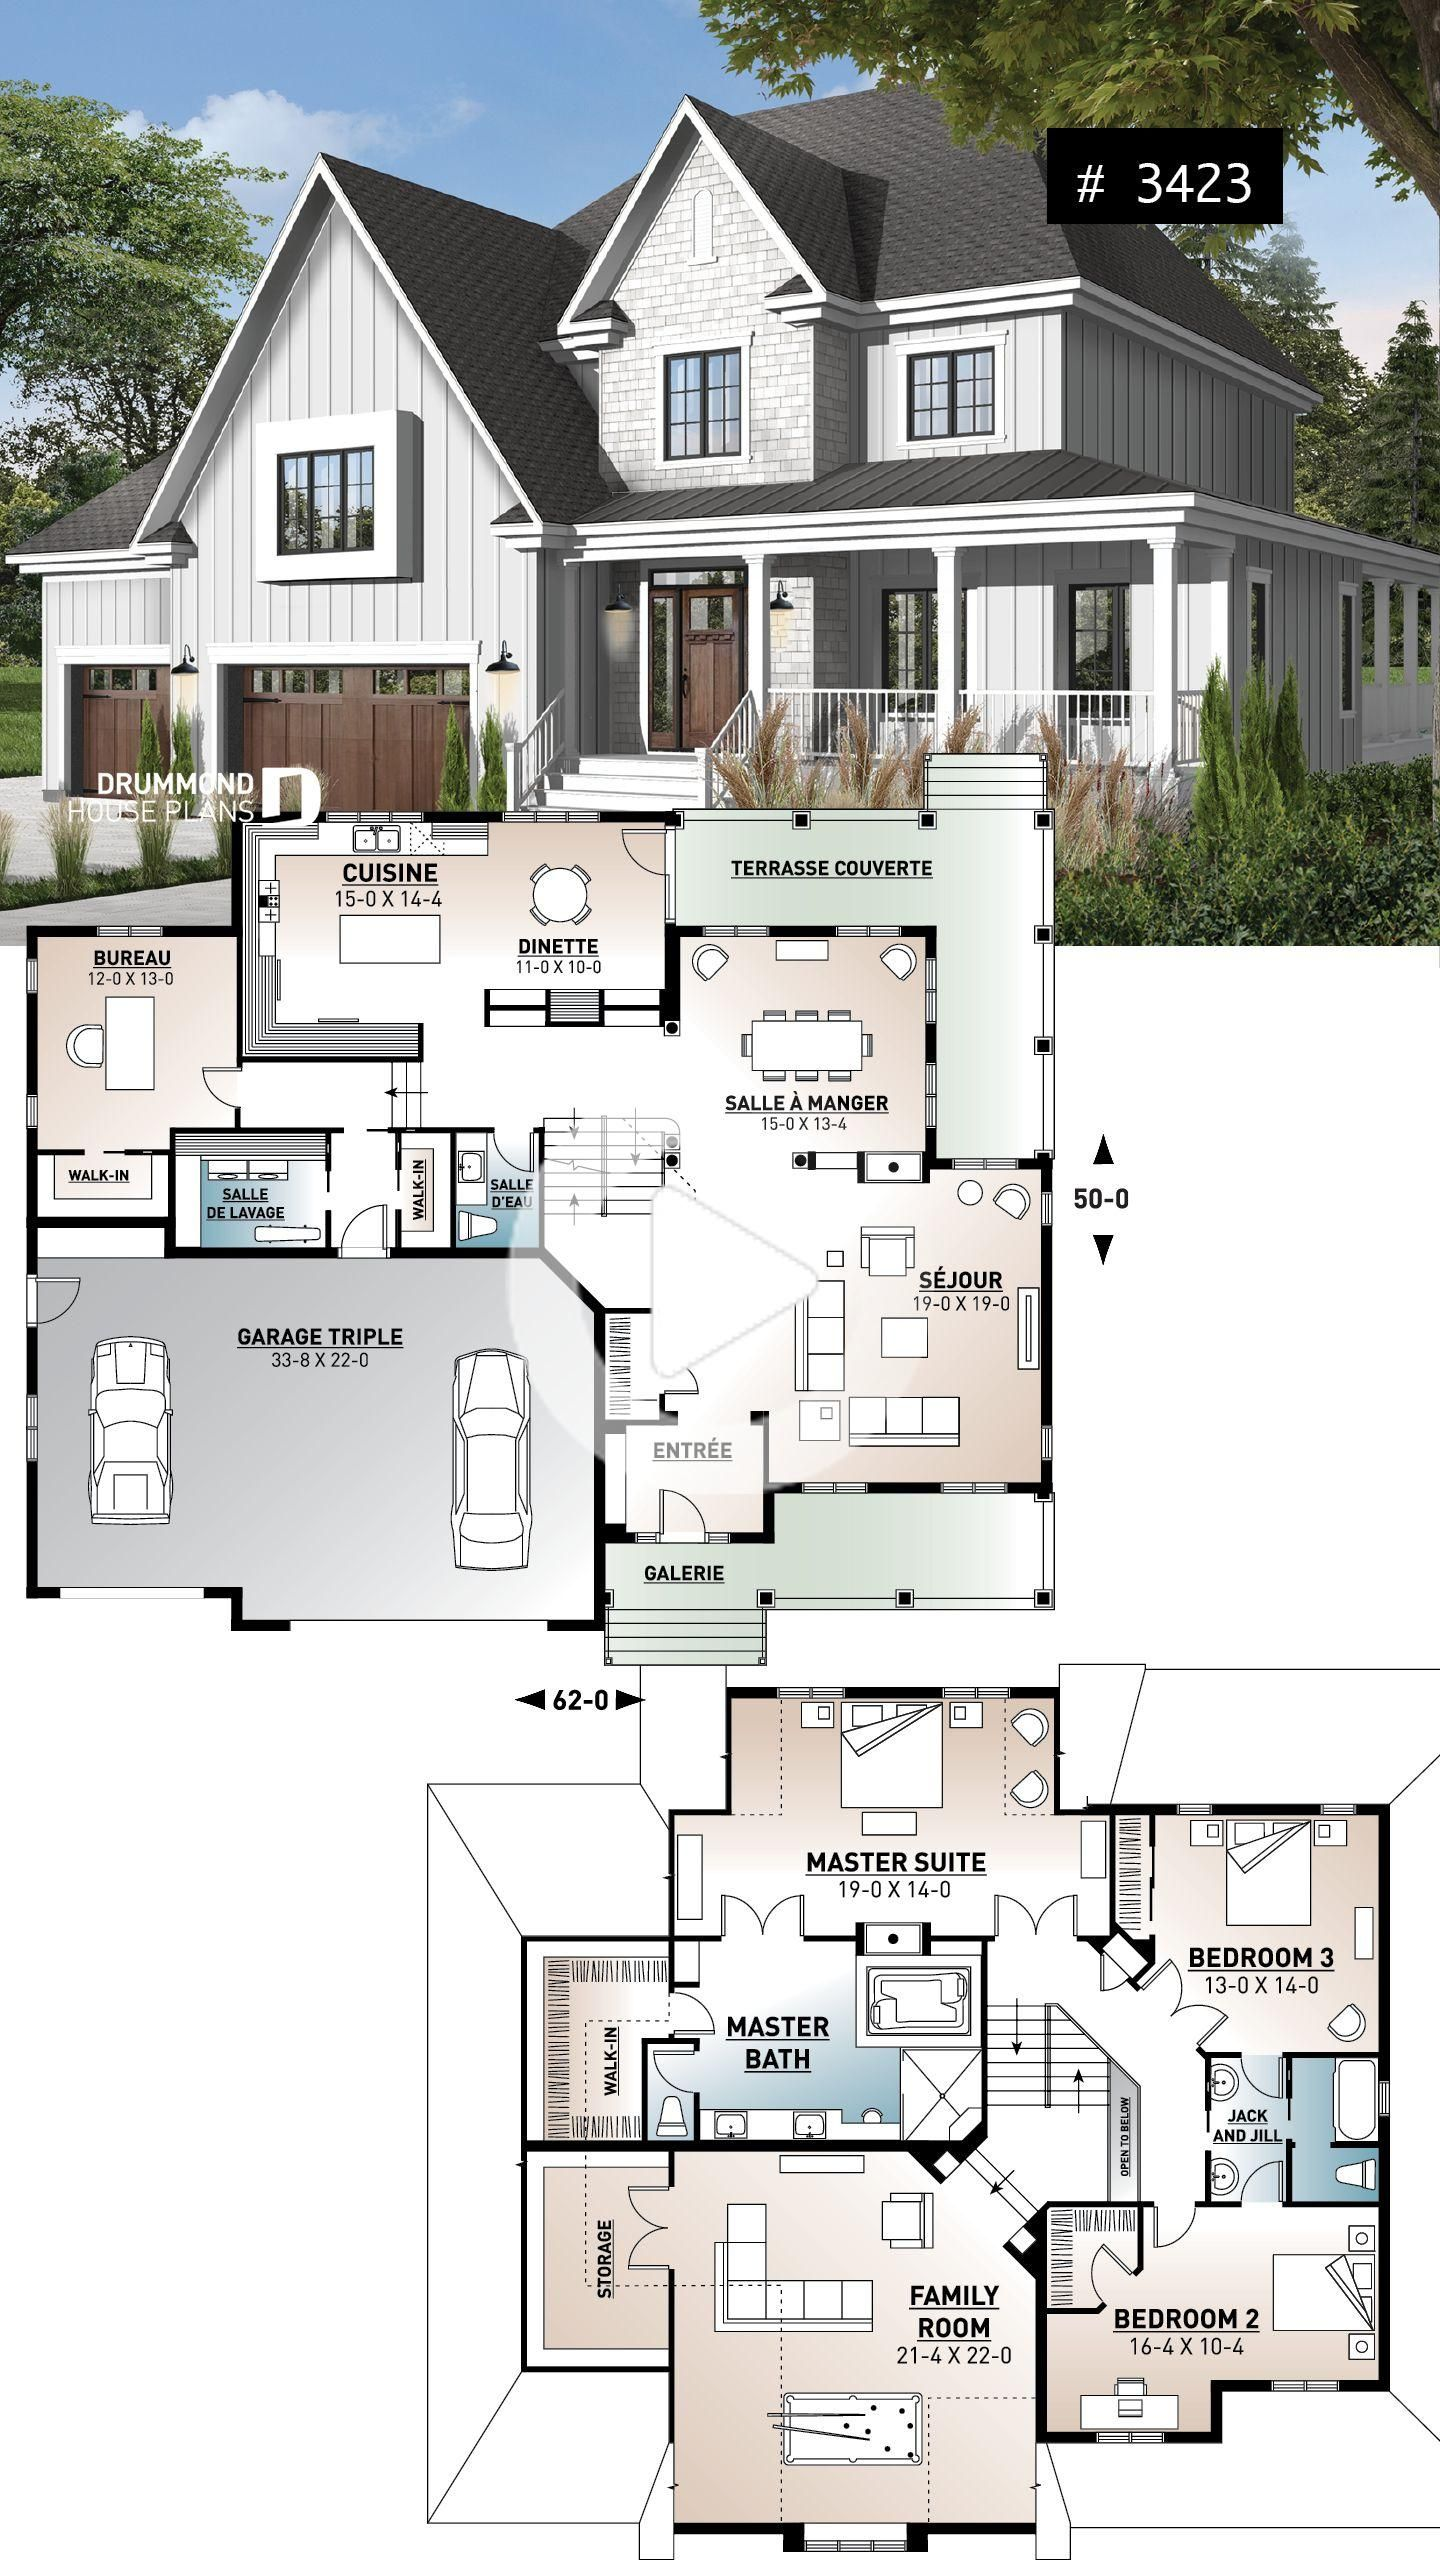 House Design 10x13 With 3 Bedrooms Full Plans House Plans 3d In 2020 House Construction Plan Small House Design Plans Bungalow House Design